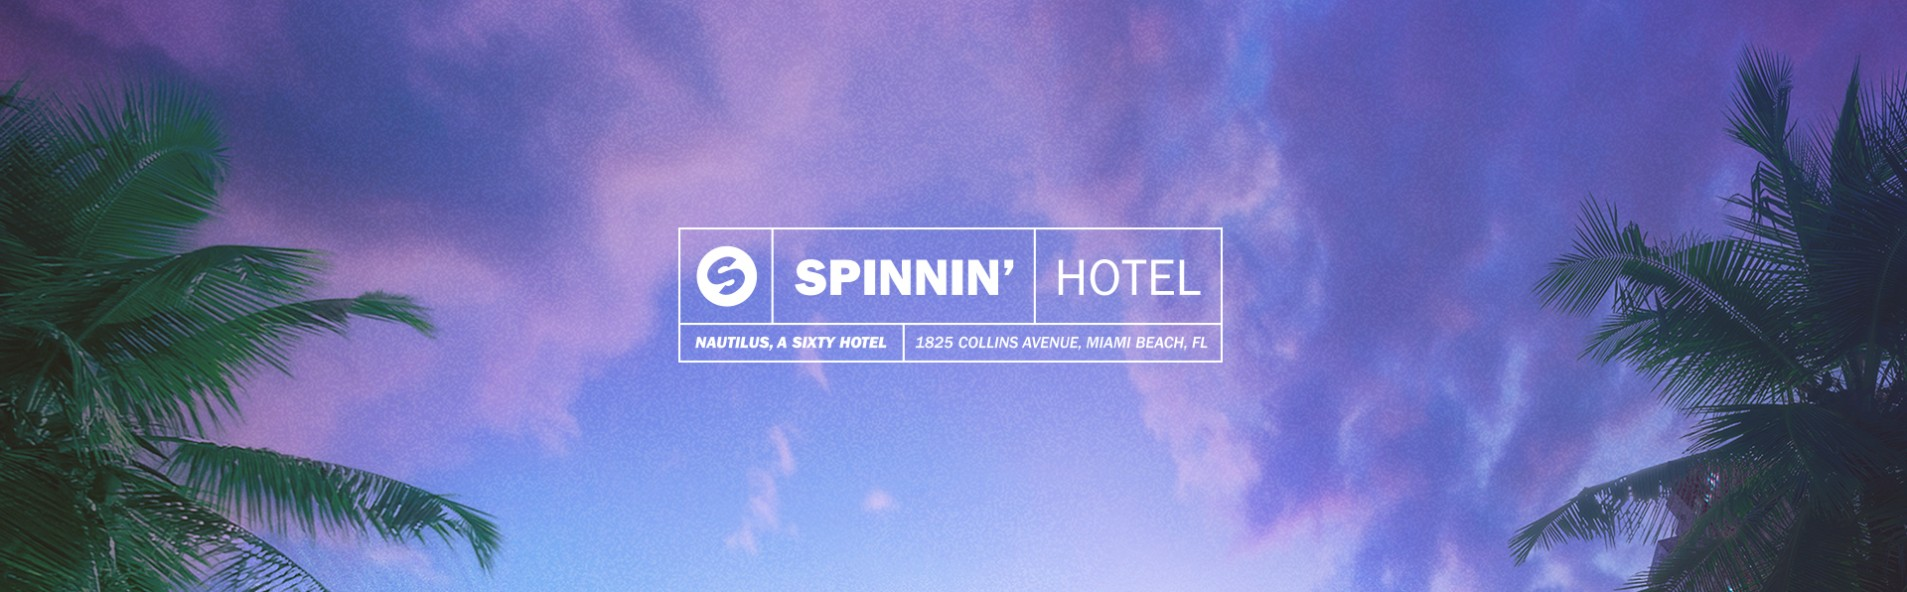 Spinnin' Sessions Spinnin' Hotel | Miami 2017